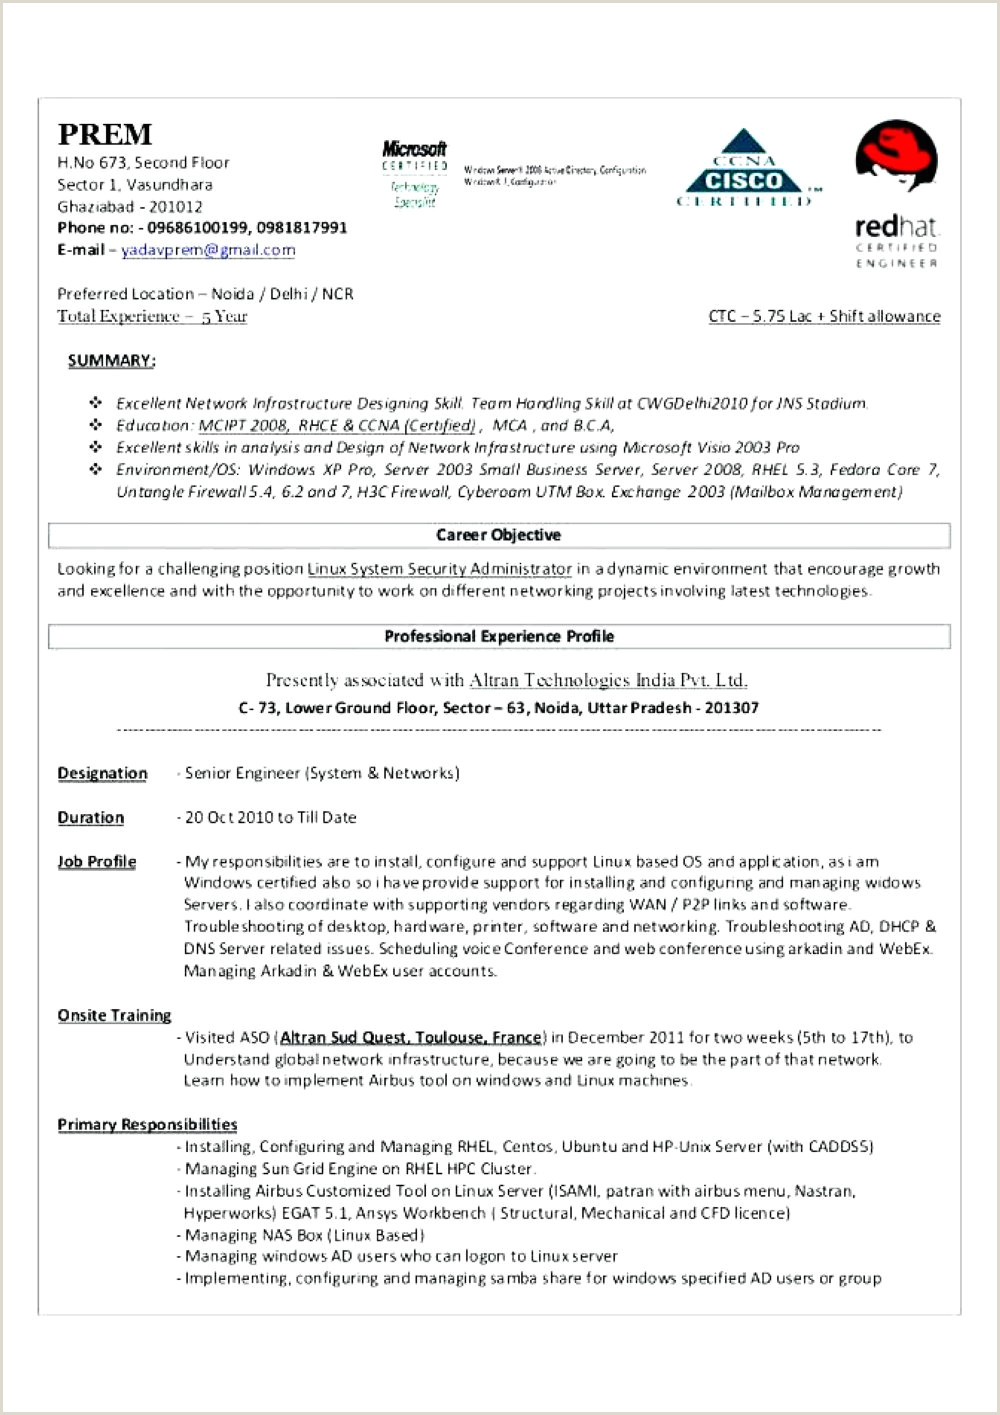 Sample Resume for Linux System Administrator Fresher System Administrator Resume Network Sample Co Windows